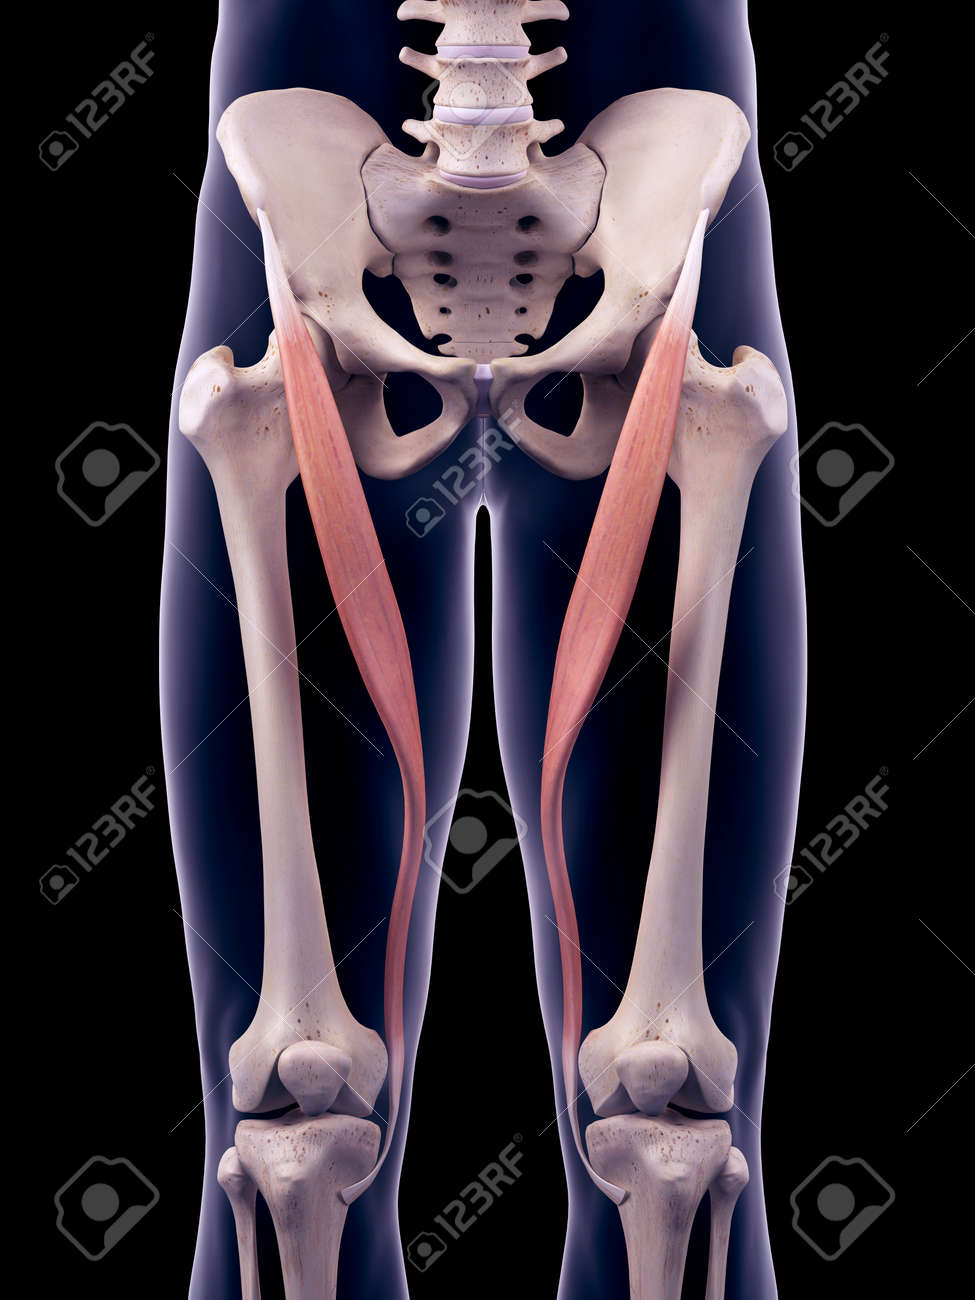 Medically Accurate Illustration Of The Satorius Stock Photo Picture